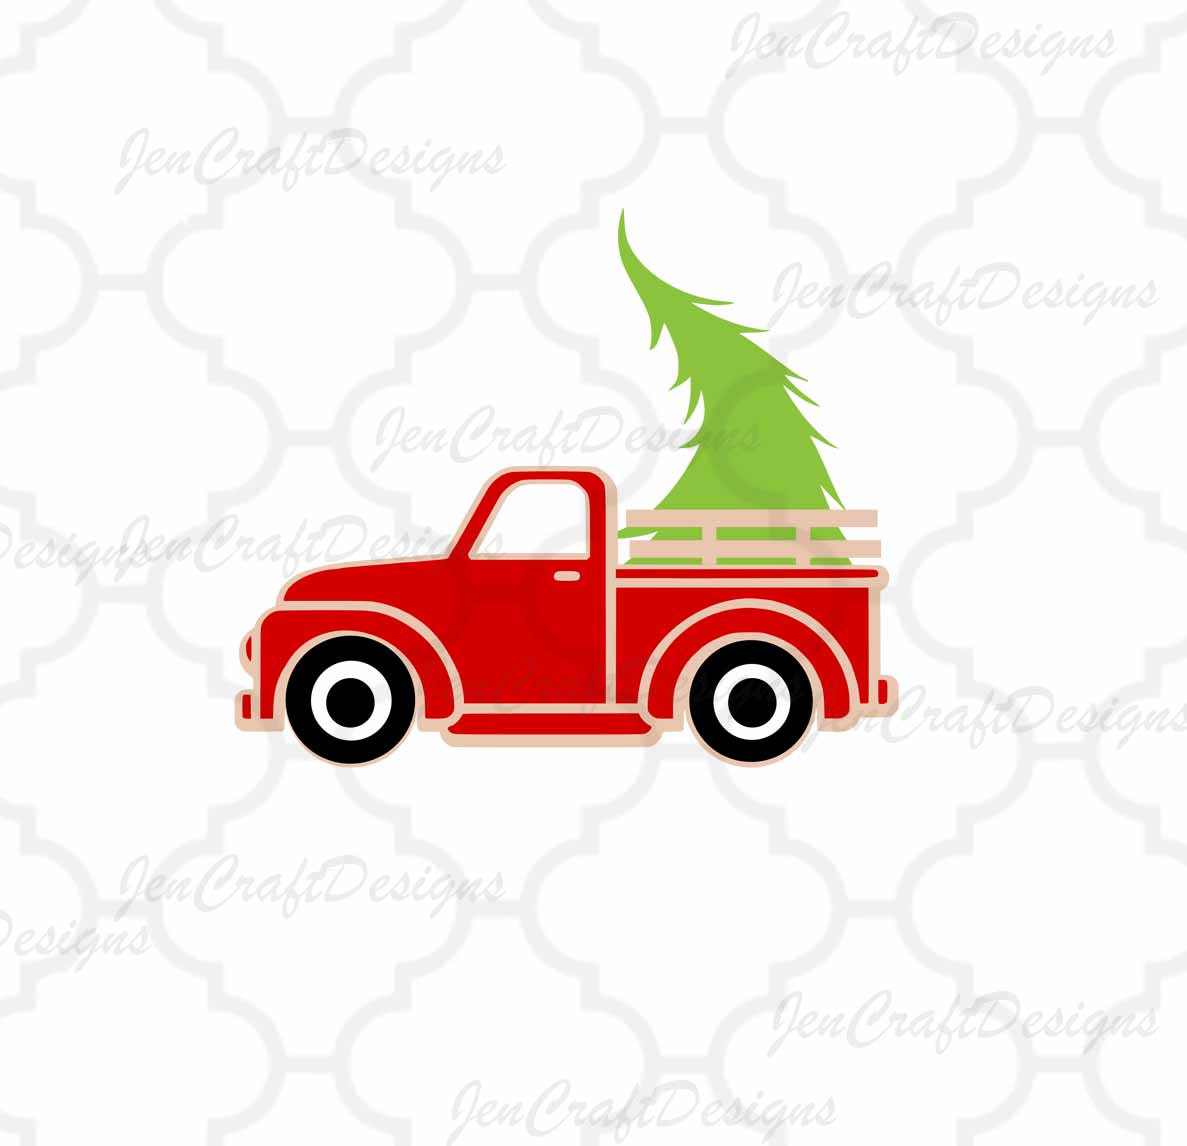 Christmas Tree Truck Svg Free.Antique Truck Silhouette At Getdrawings Com Free For